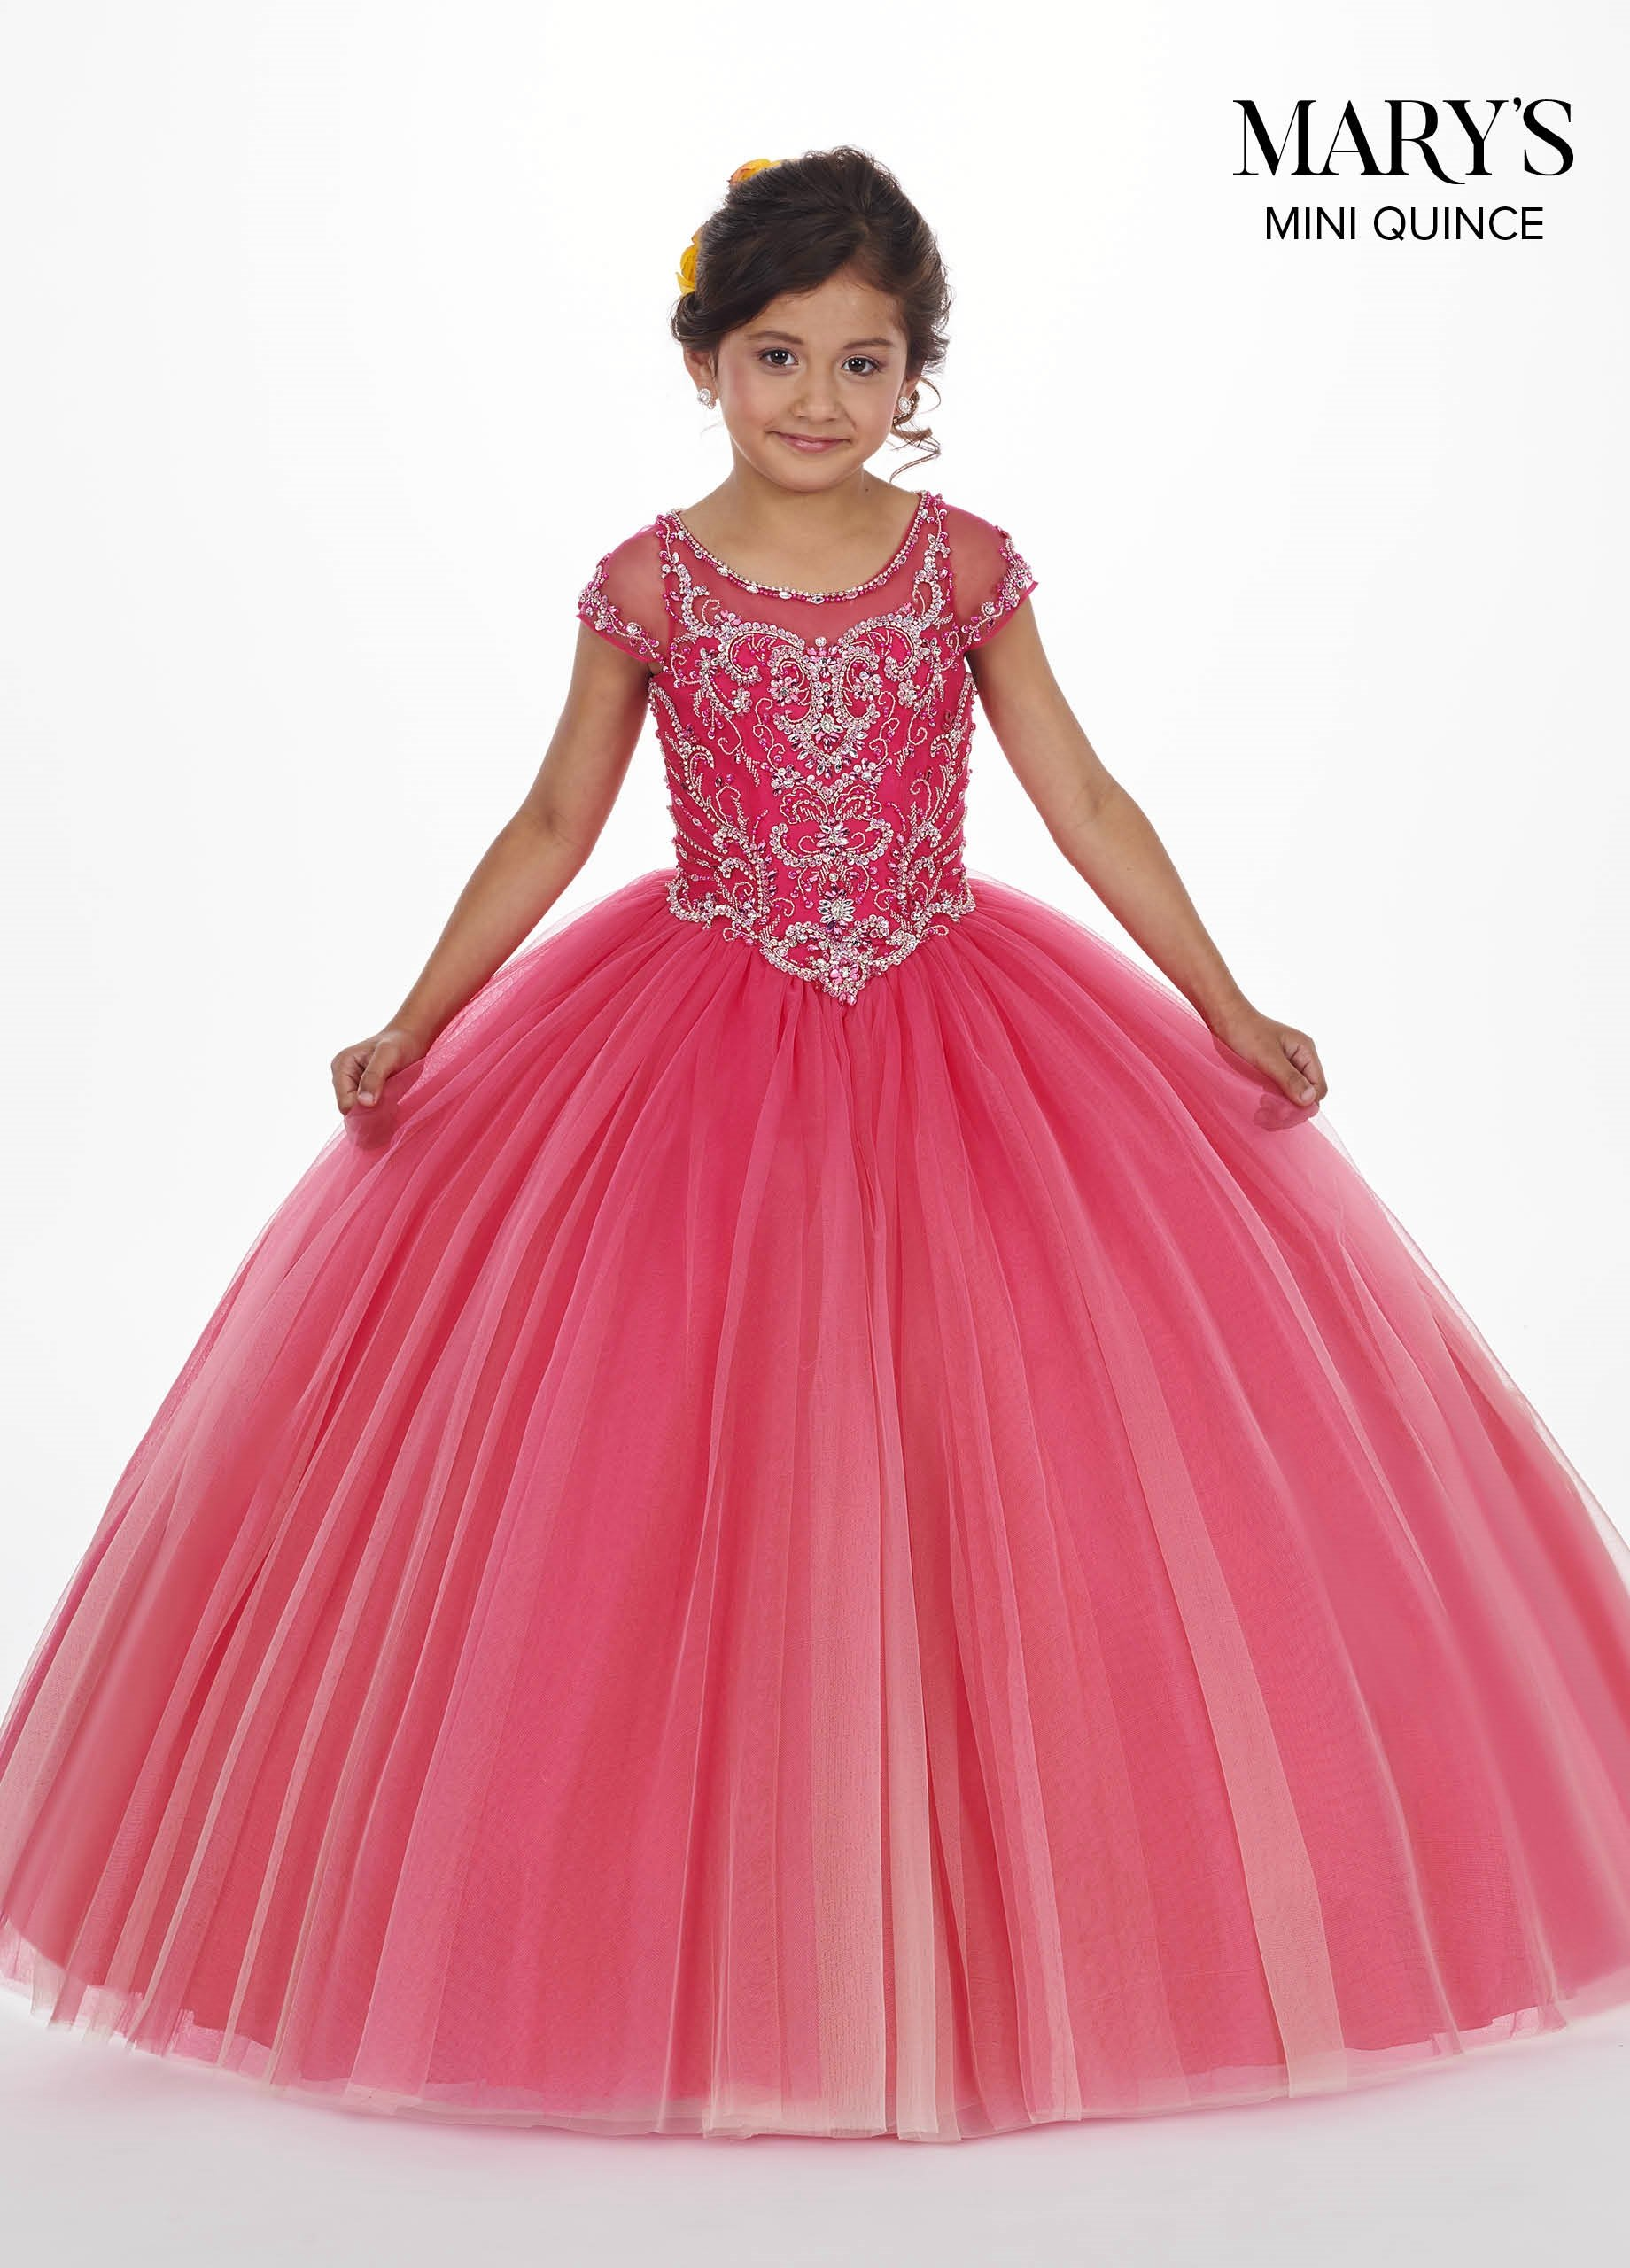 Feestjurken Kinderen.Girls Long Ombre Dress With Short Sleeves By Mary S Bridal Mq4007